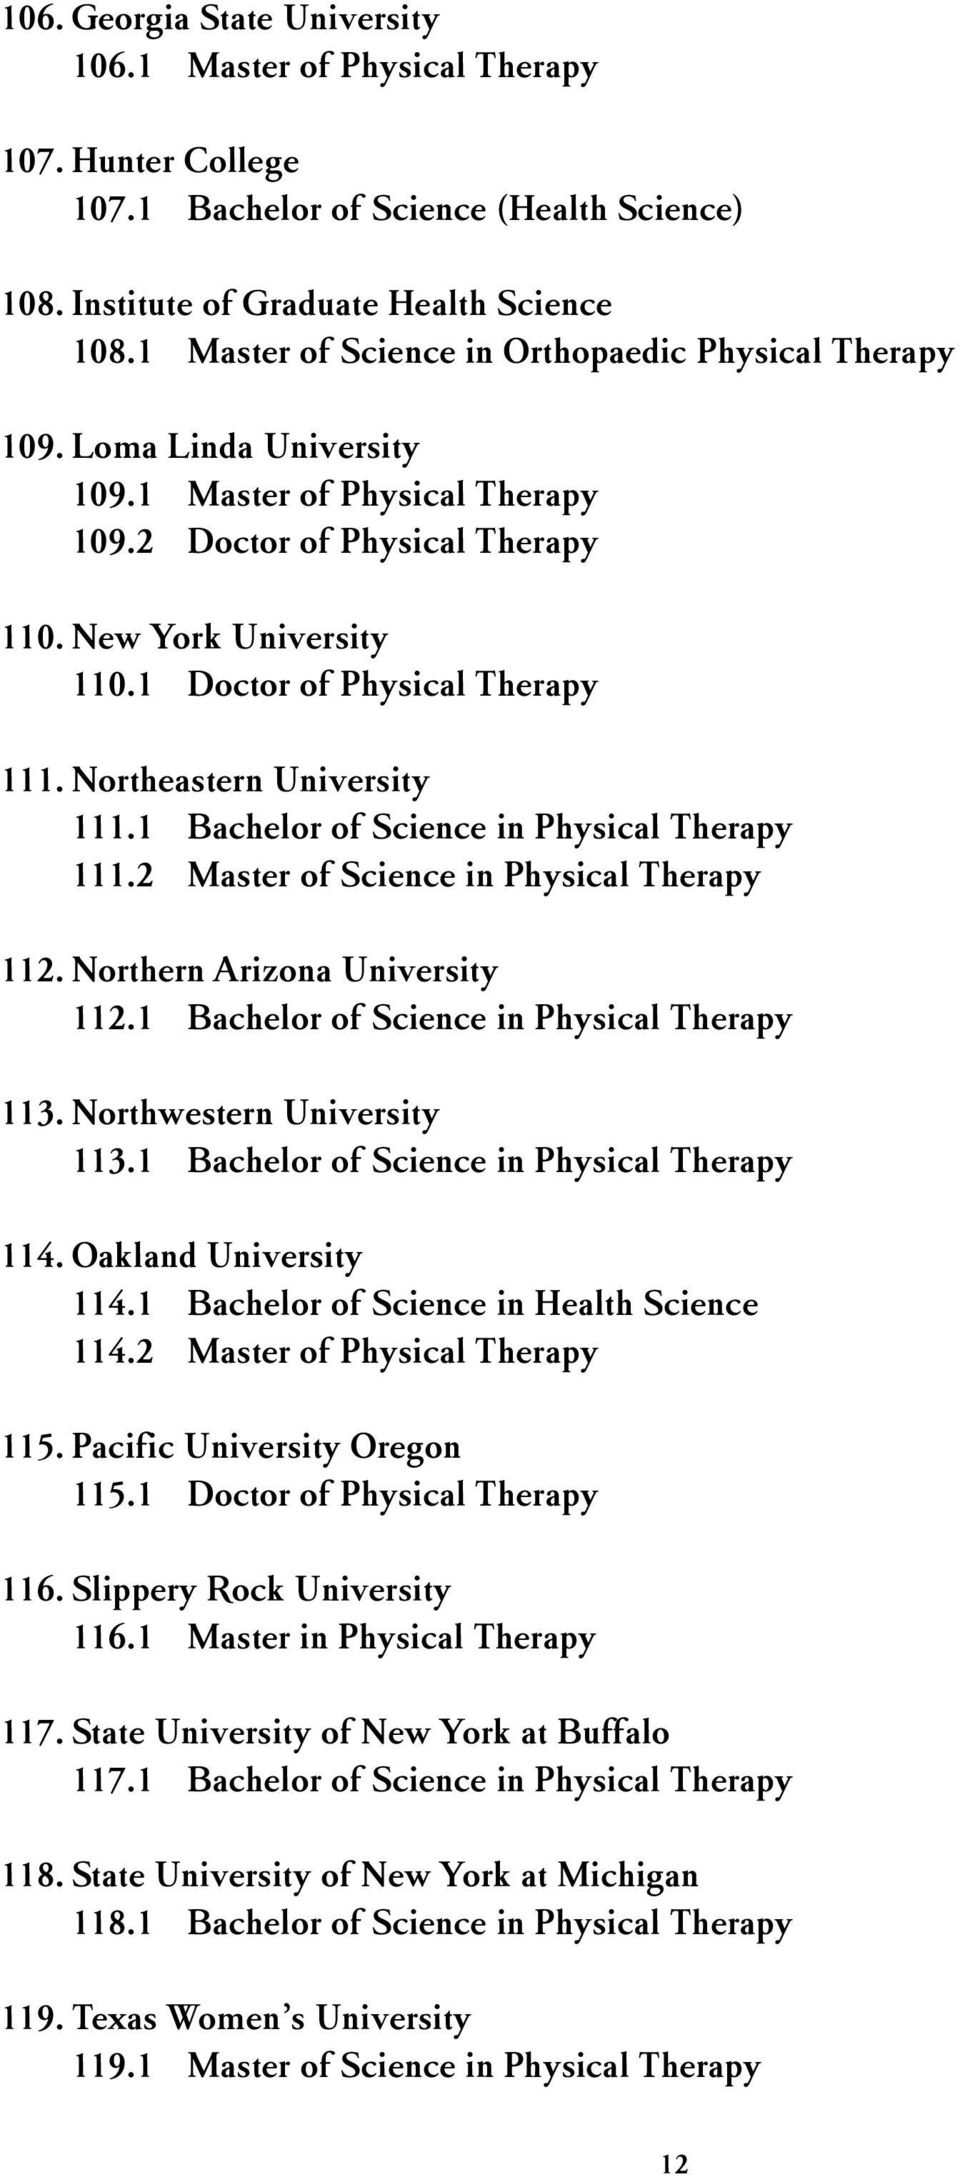 1 Doctor of Physical Therapy 111. Northeastern University 111.1 Bachelor of Science in Physical Therapy 111.2 Master of Science in Physical Therapy 112. Northern Arizona University 112.